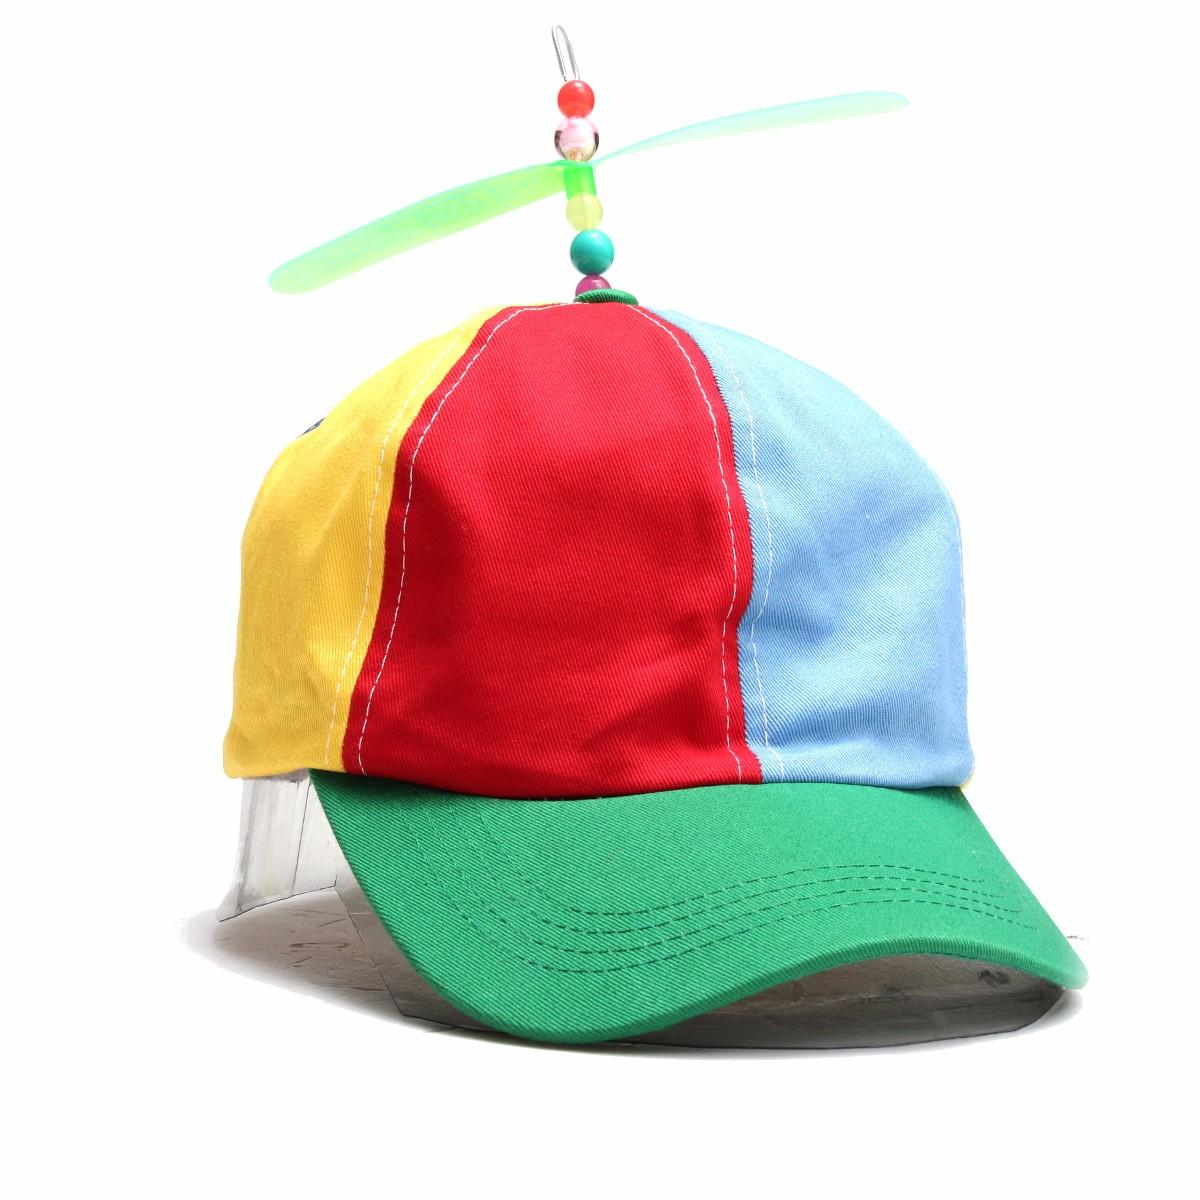 471d0b0b46df5 women copter helicopter propeller hat multi-color patchwork ...